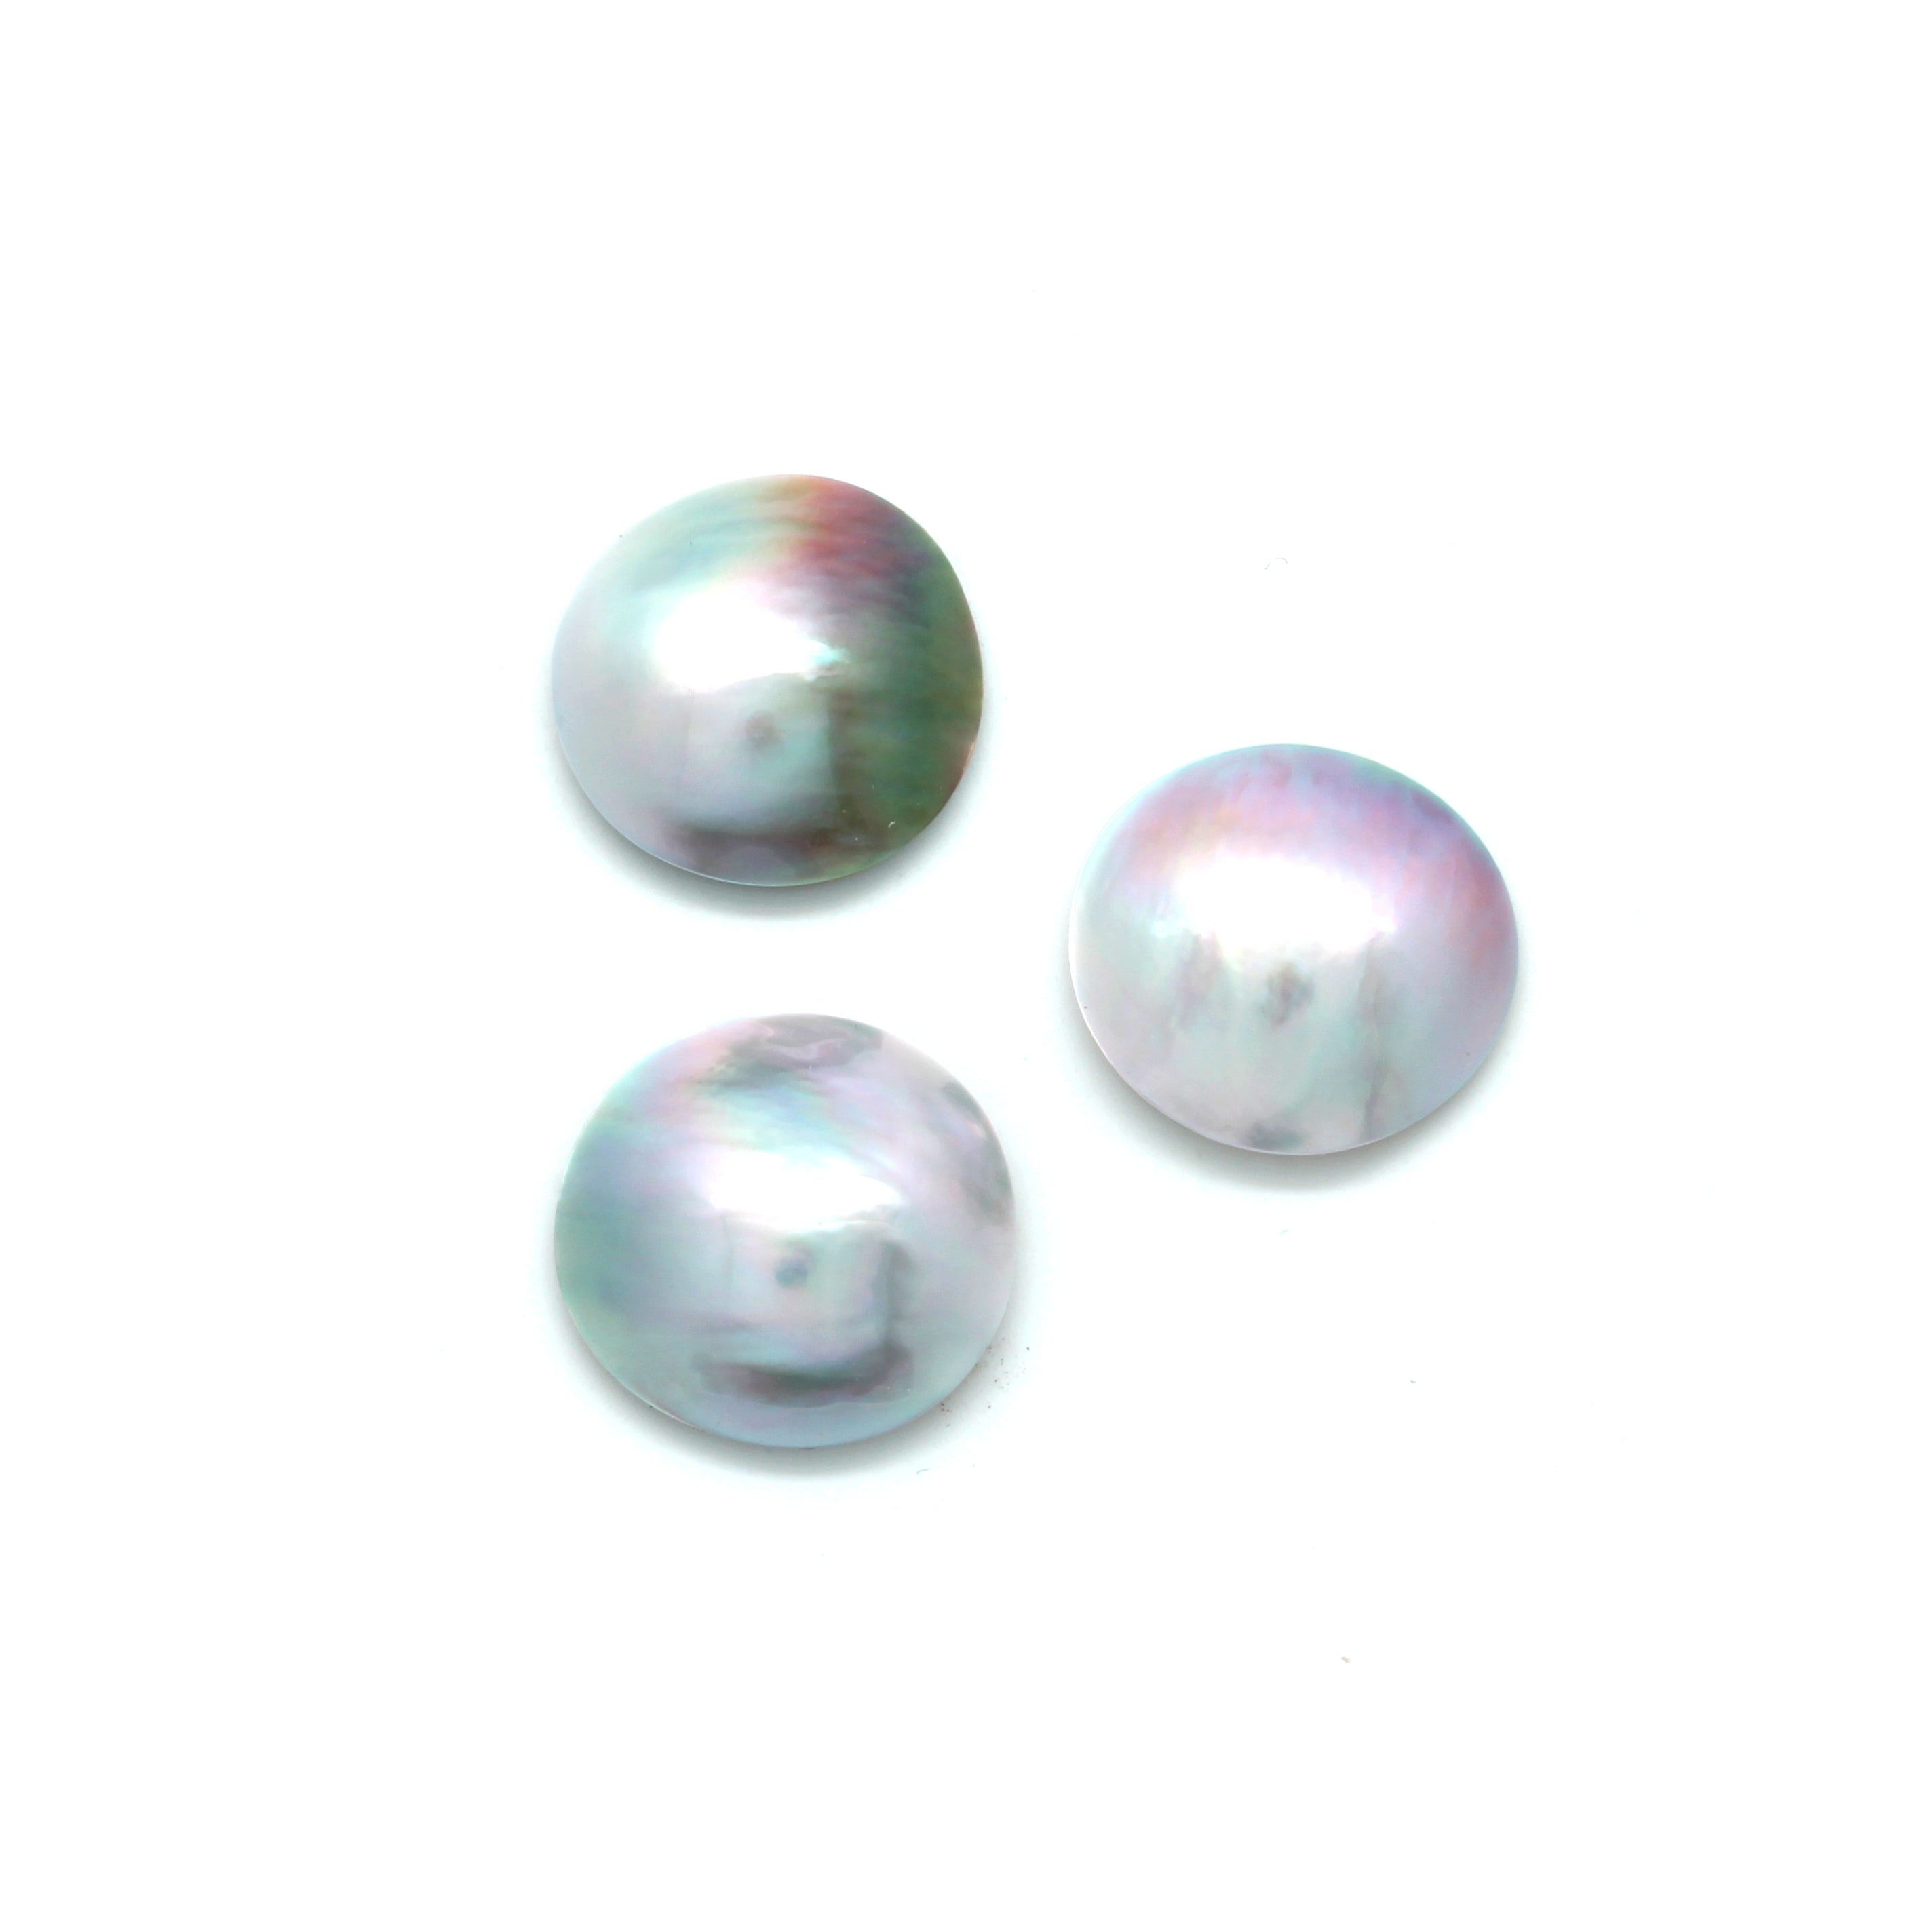 3 Oval Cortez Mabe Pearls